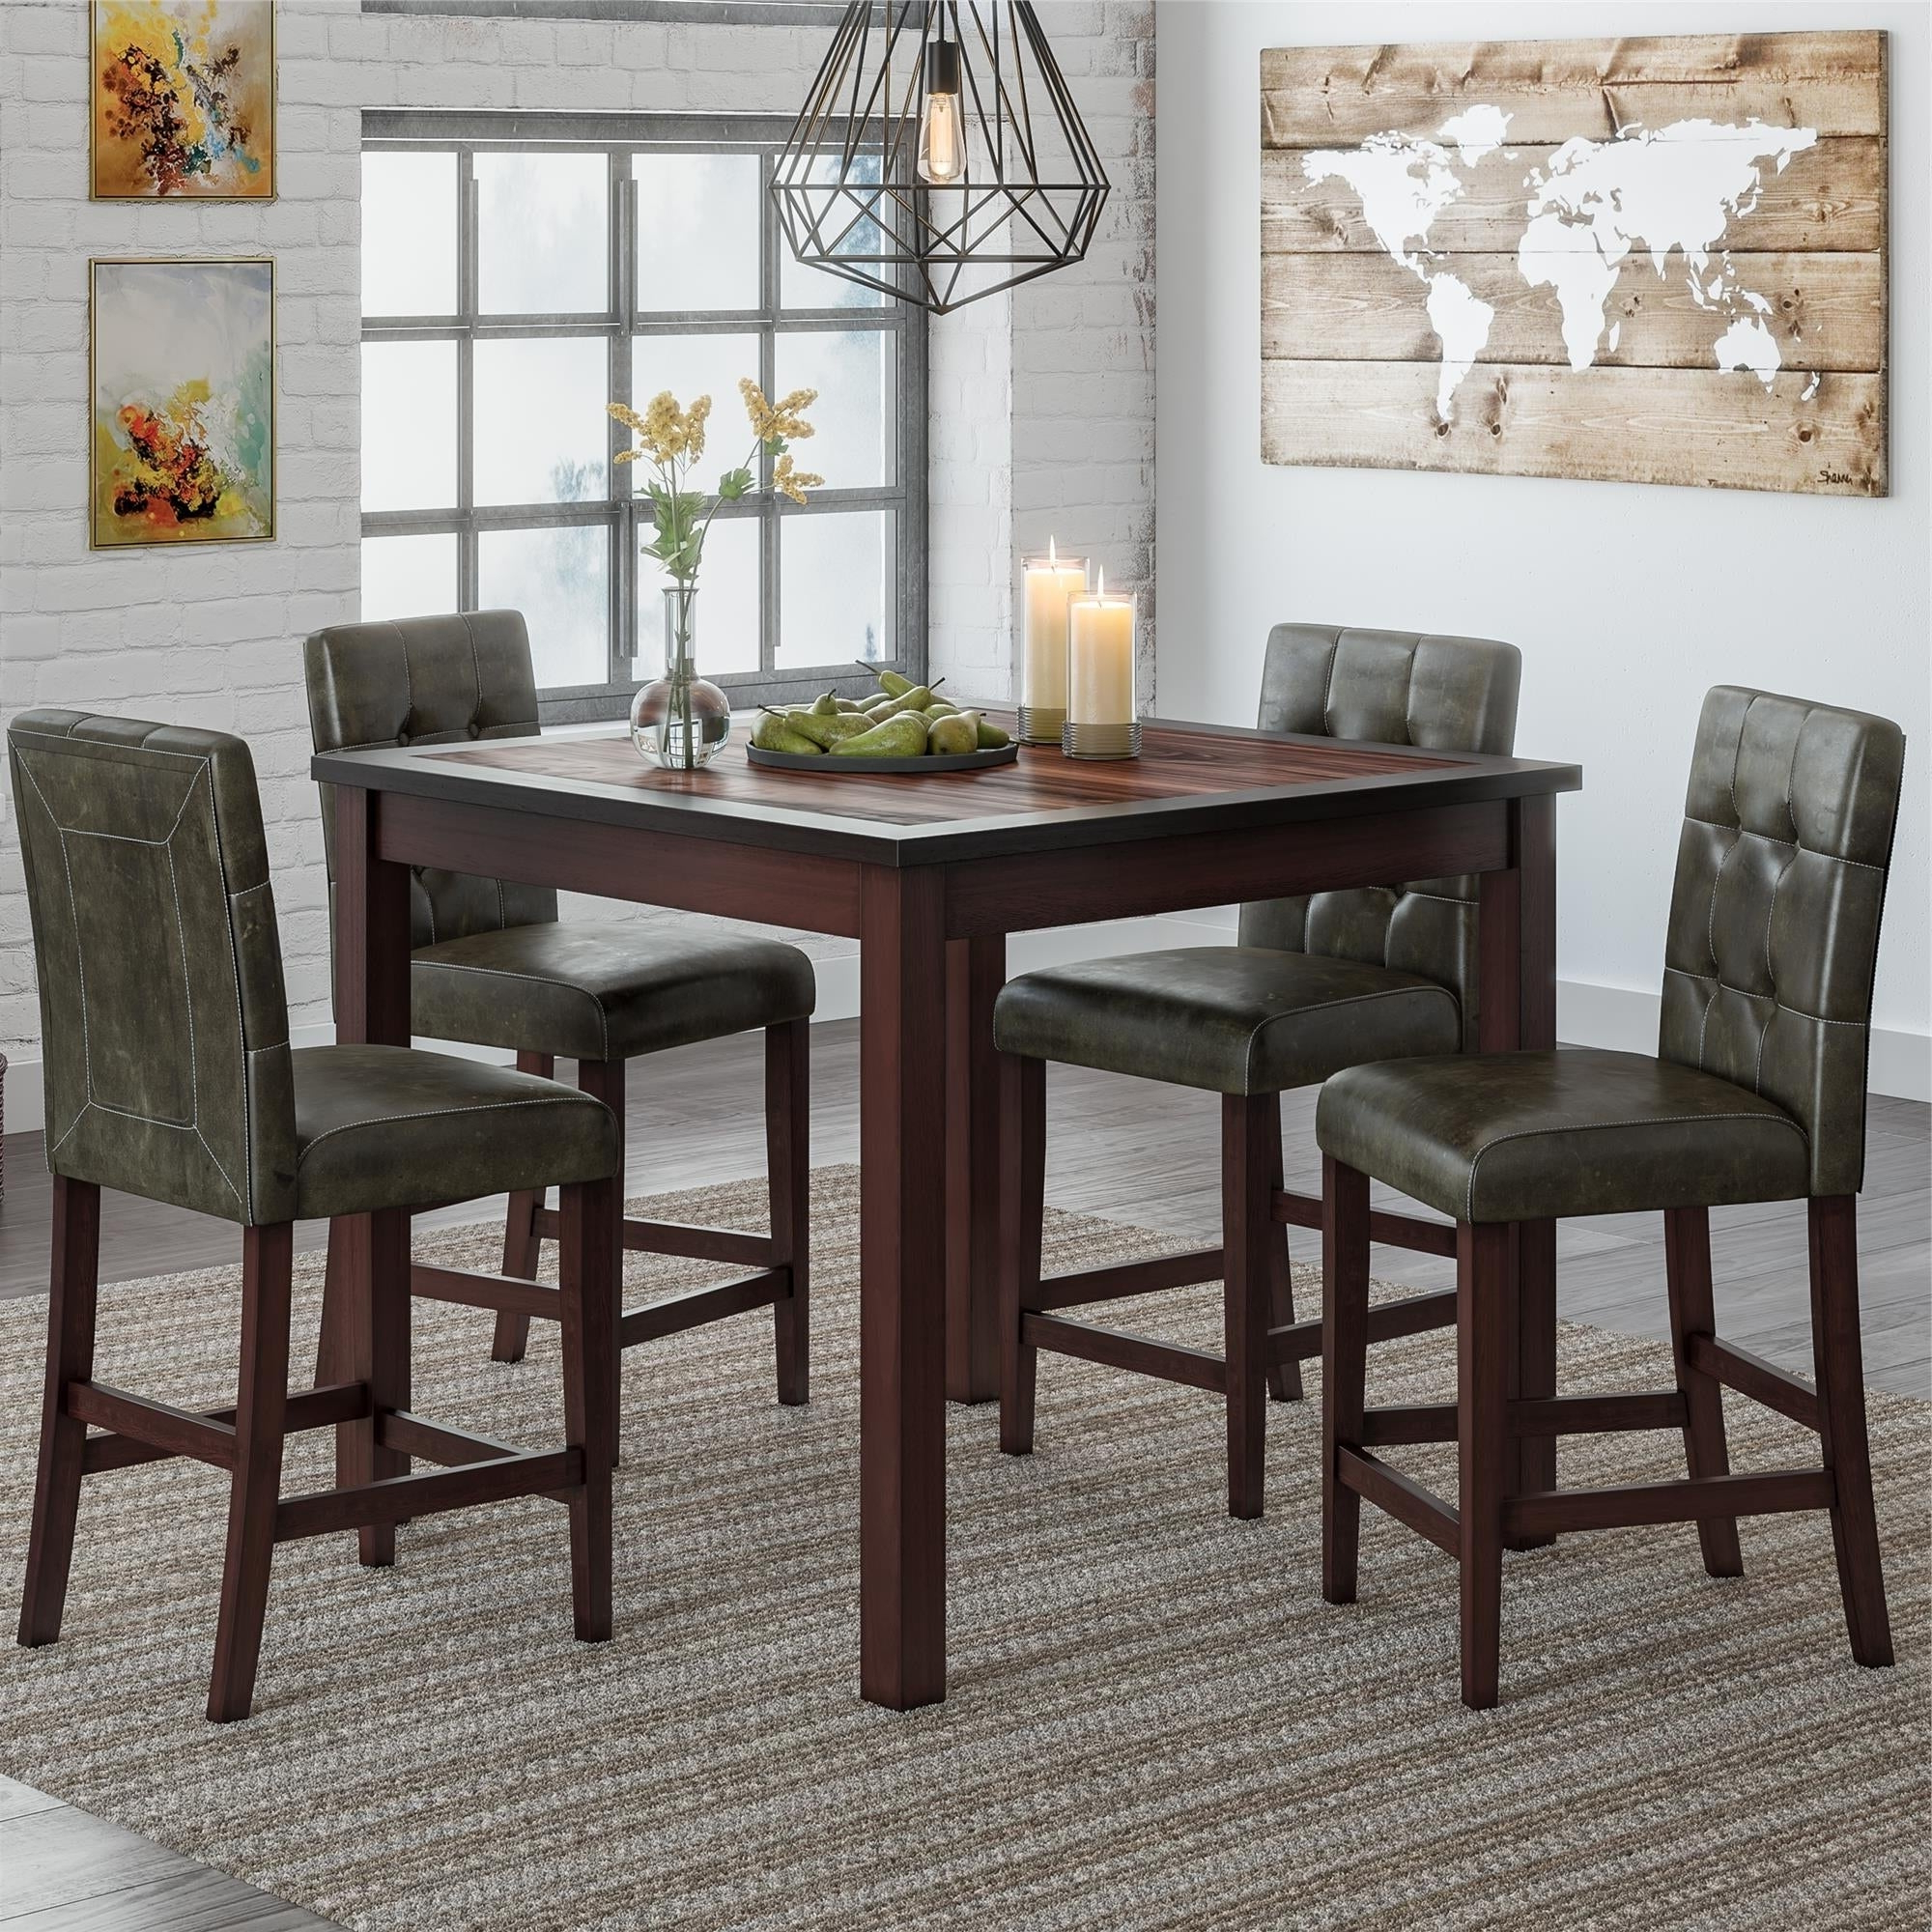 Shop Gracewood Hollow Betancourt Espresso 5 Piece Counter Height Within Most Recent Bettencourt 3 Piece Counter Height Solid Wood Dining Sets (View 13 of 25)